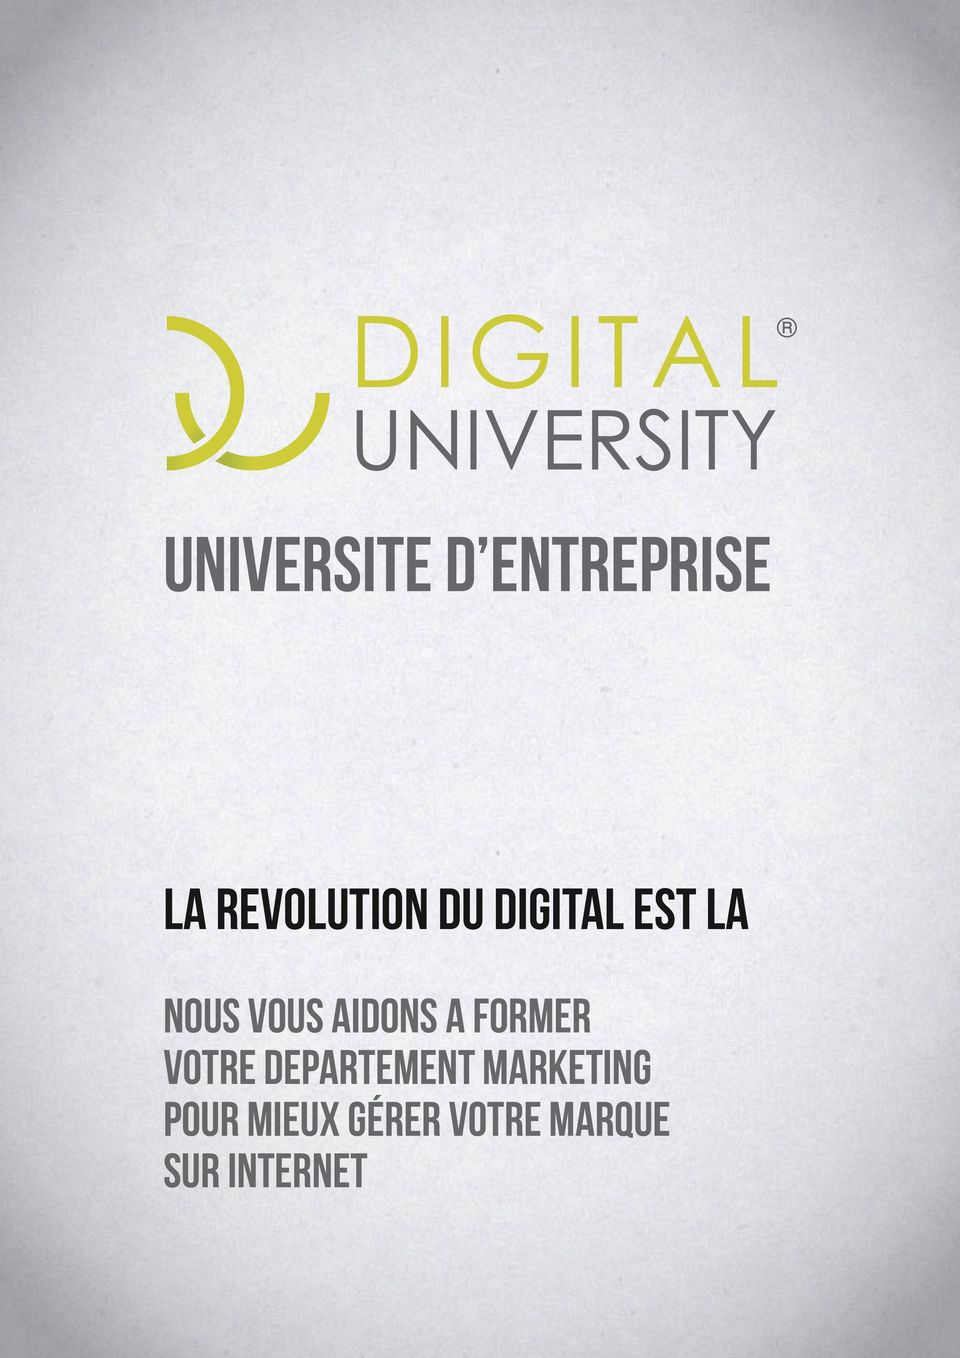 FORMER VOTRE DEPARTEMENT MARKETING